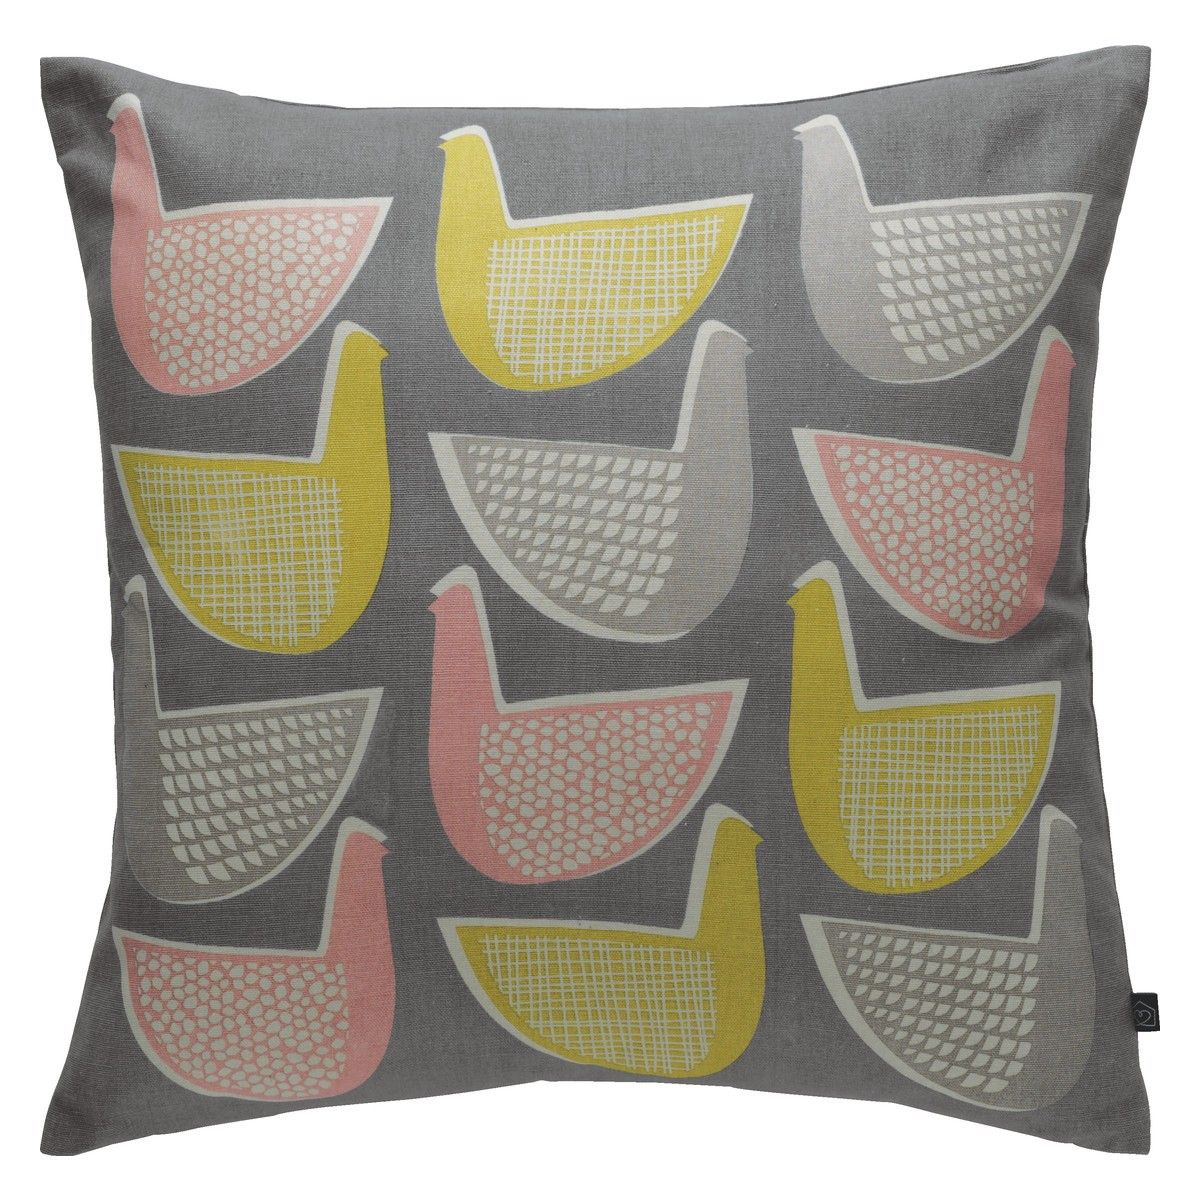 Pennie Multi Coloured Patterned Cushion 45 X 45cm Sofas